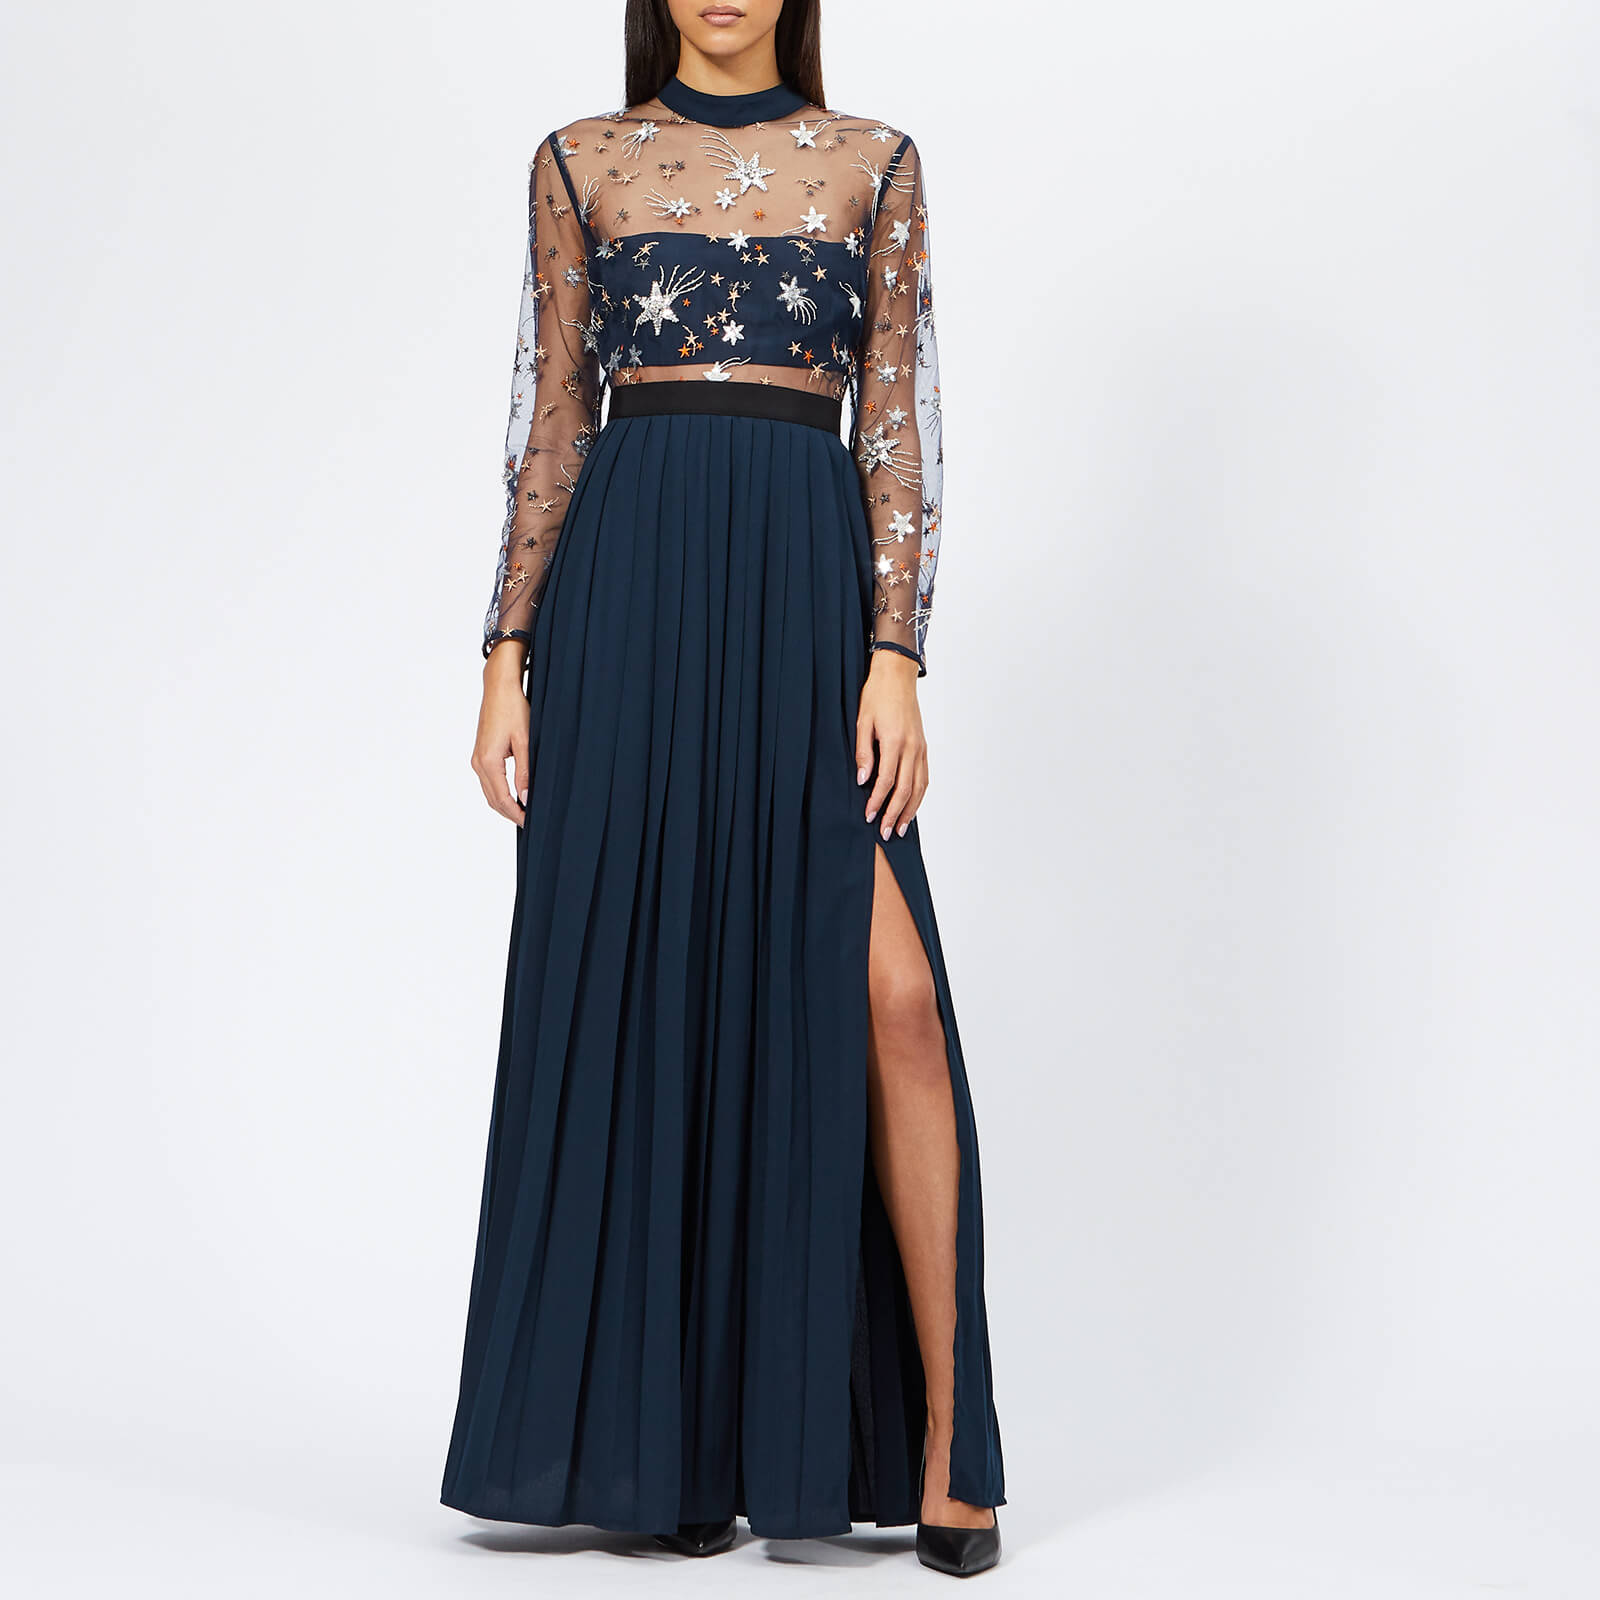 e80632988a20 Self-Portrait Women's Star Tulle Embellished Maxi Dress - Navy - Free UK  Delivery over £50